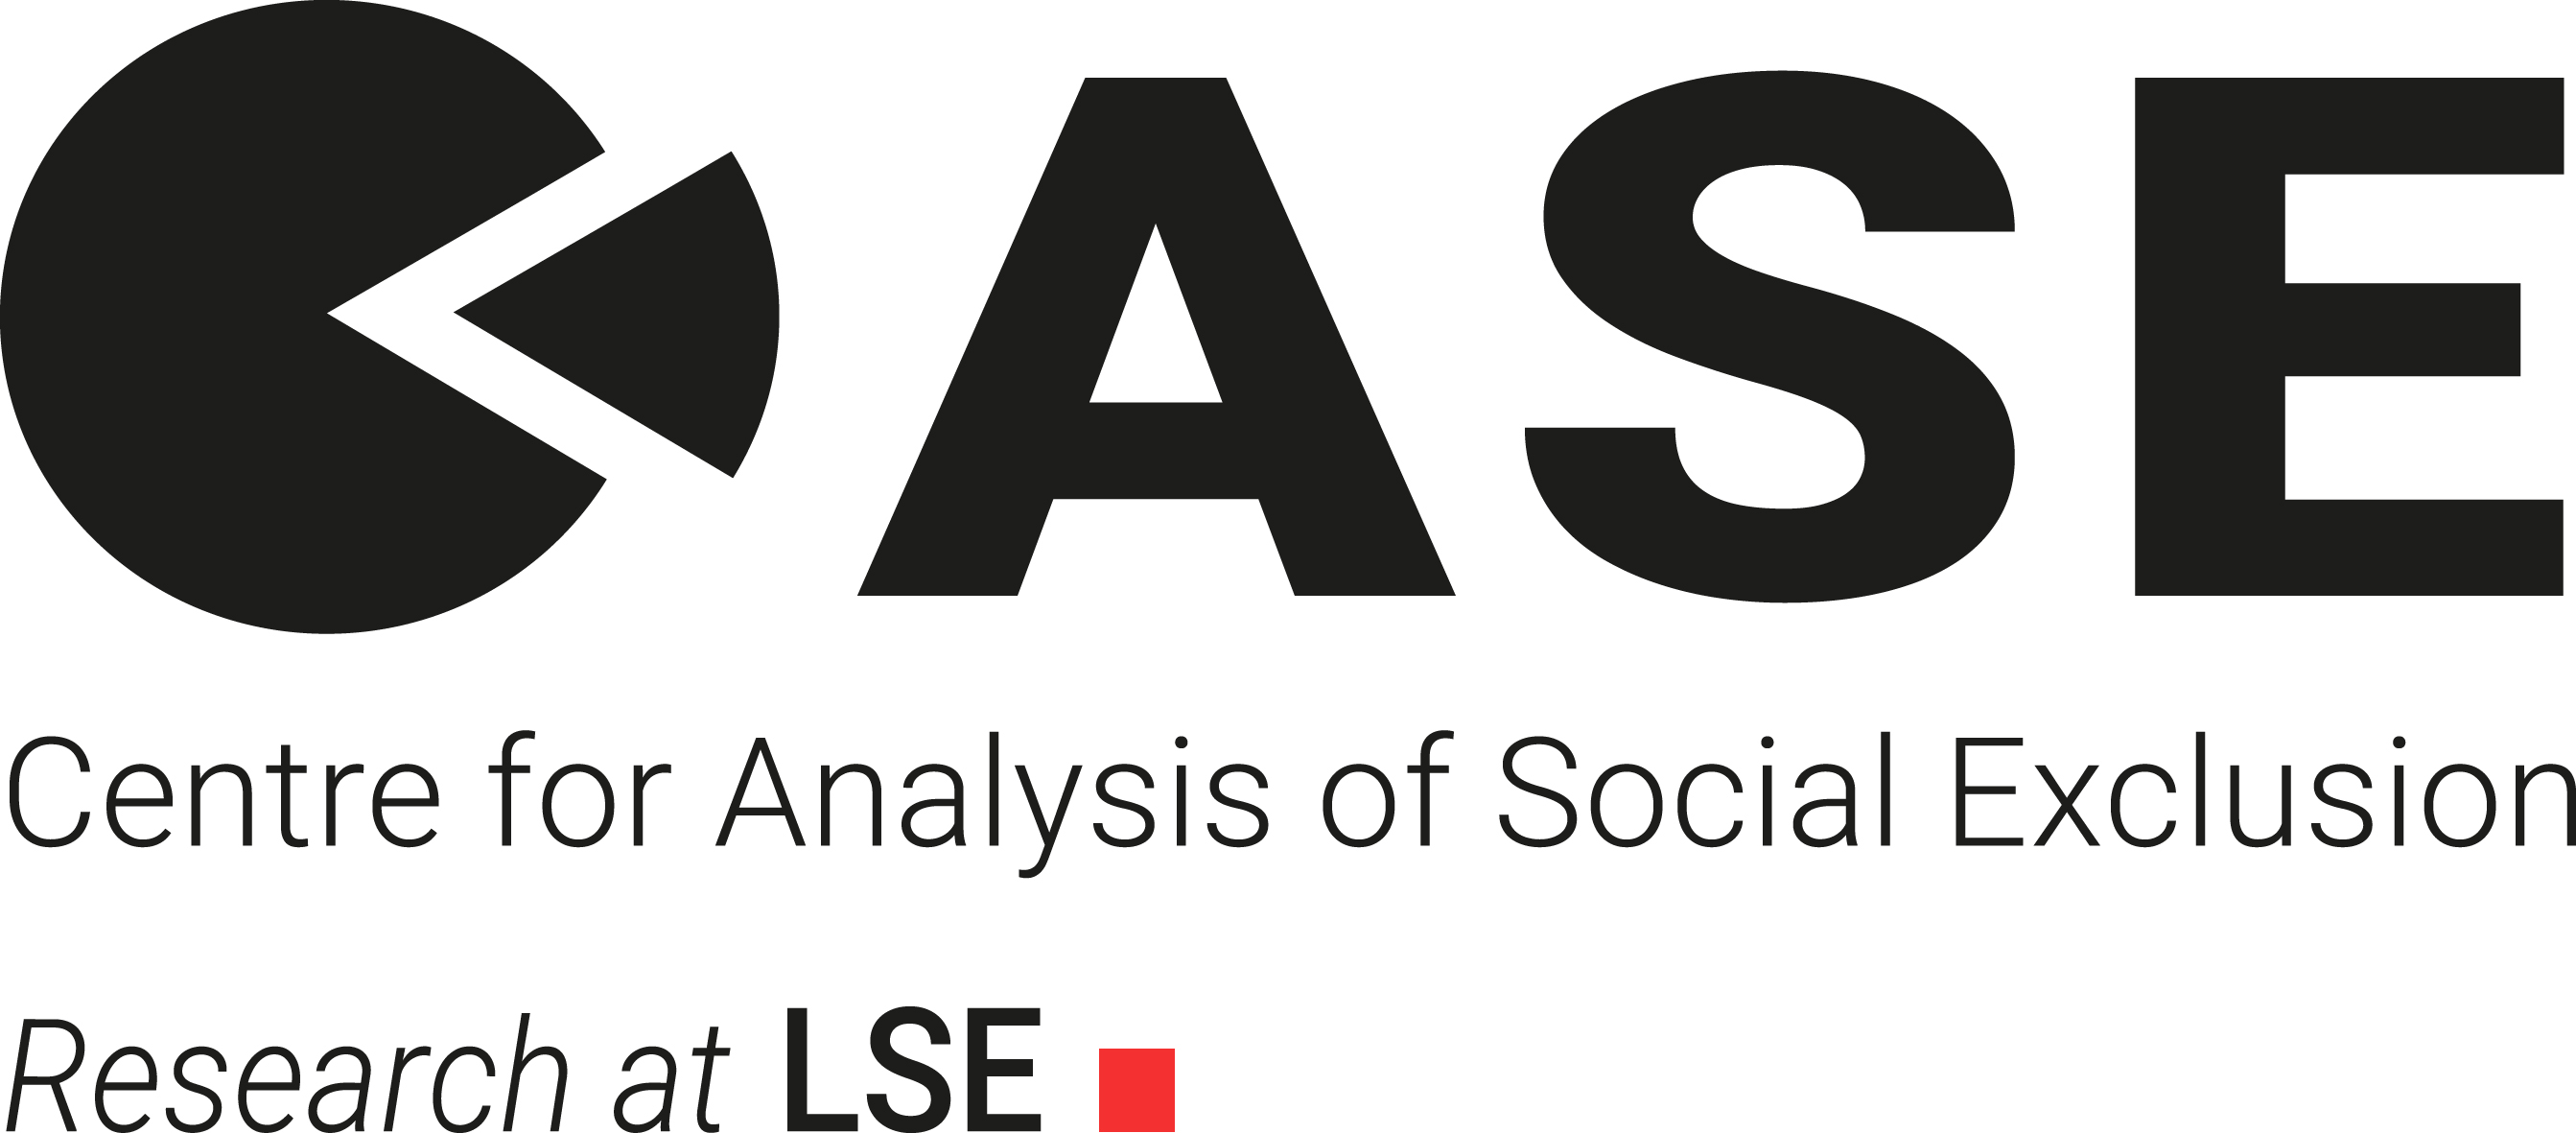 Centre for Analysis of Social Exclusion logo